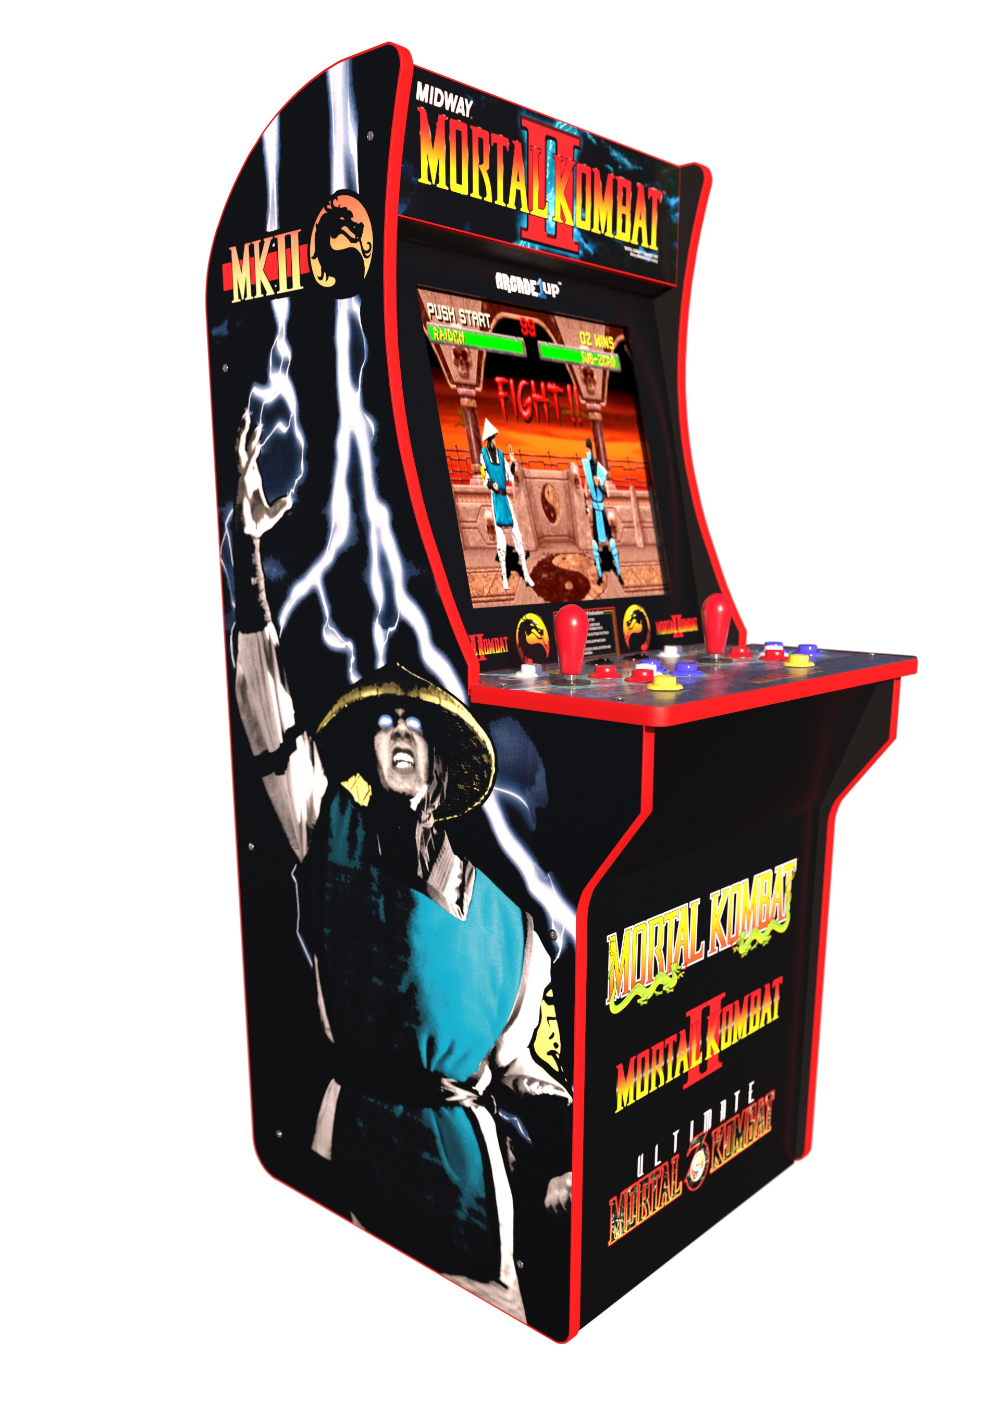 Video Games Mortal kombat arcade, Arcade, Arcade machine